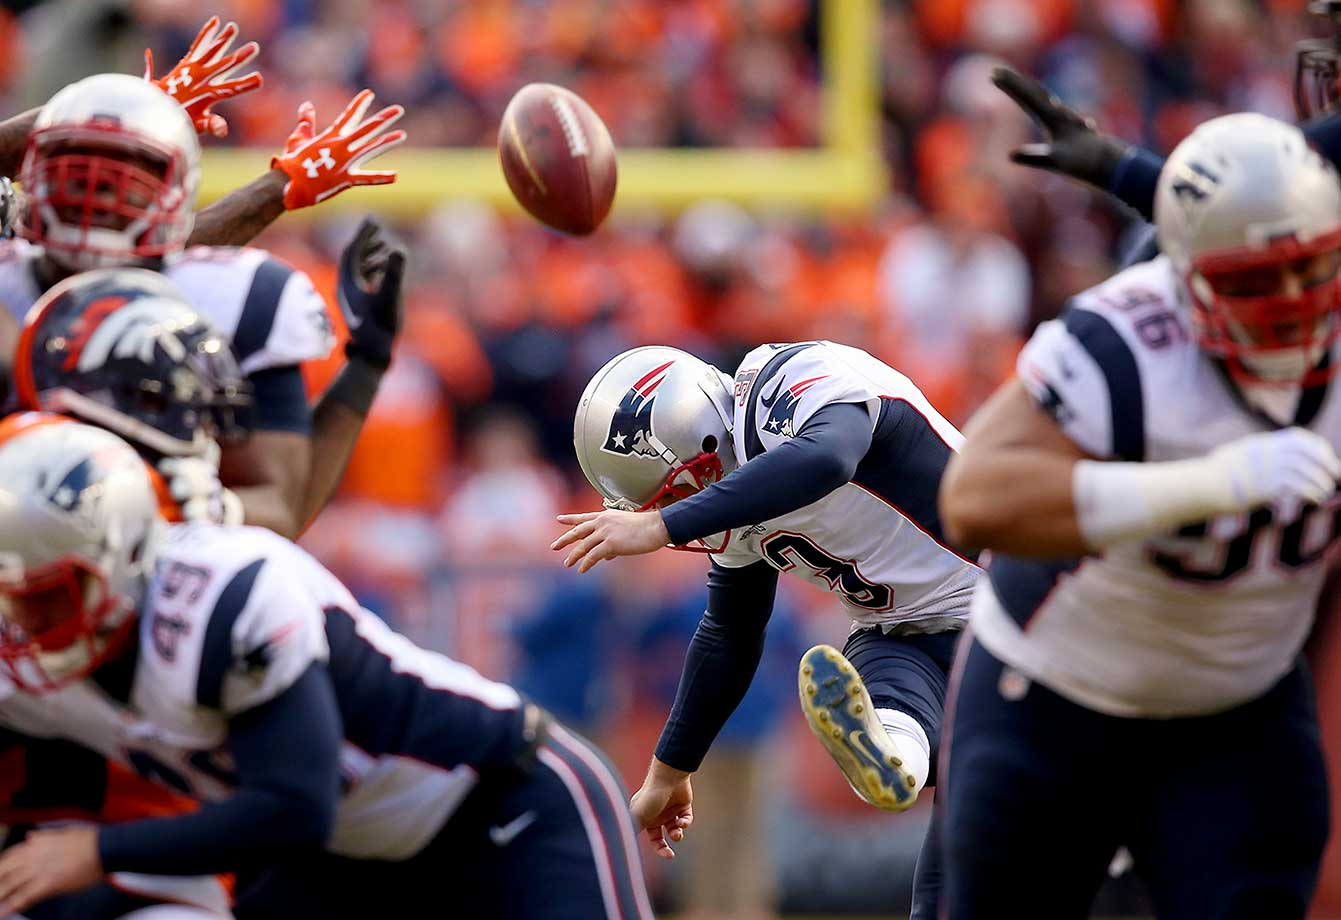 Stephen Gostkowski kicks a 46-yard field goal in the second quarter.